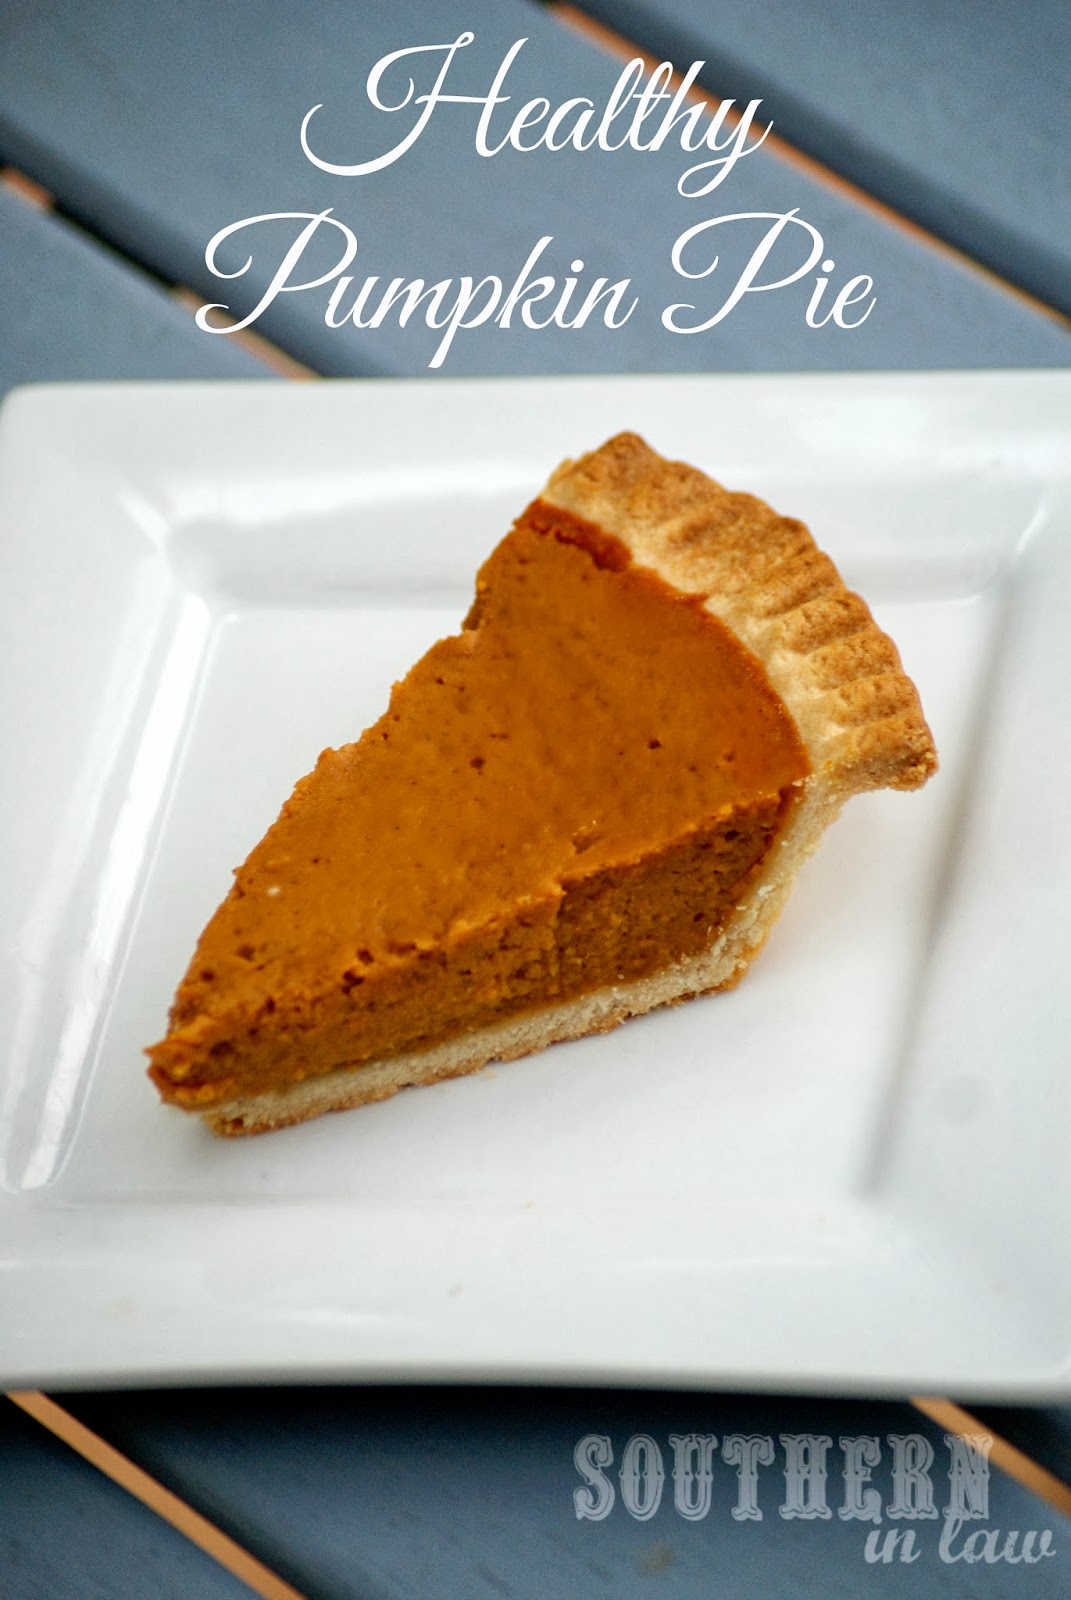 Southern In Law: Healthy Pumpkin Pie Recipe